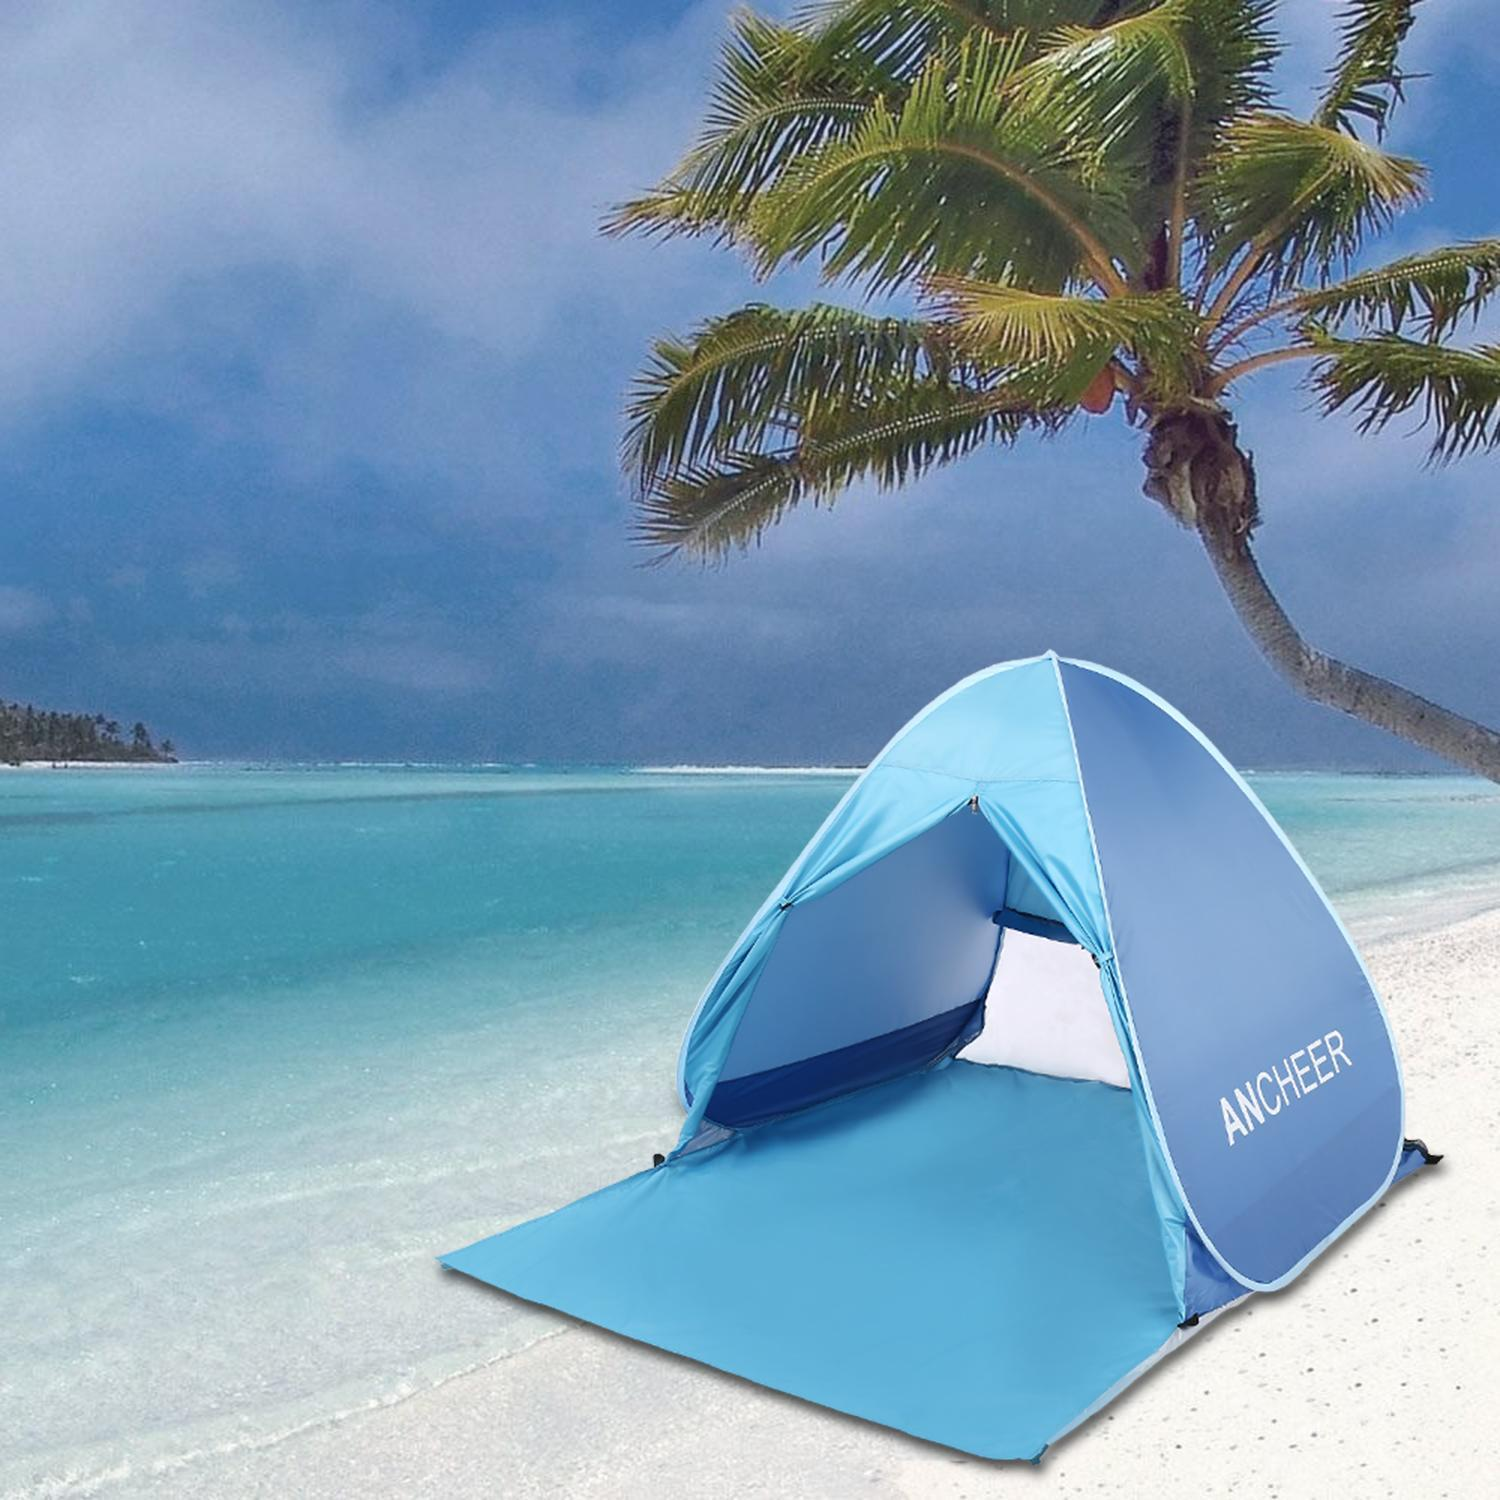 Automatic Pop Up Instant Portable Outdoors Quick Beach Tent Sun Shelter by